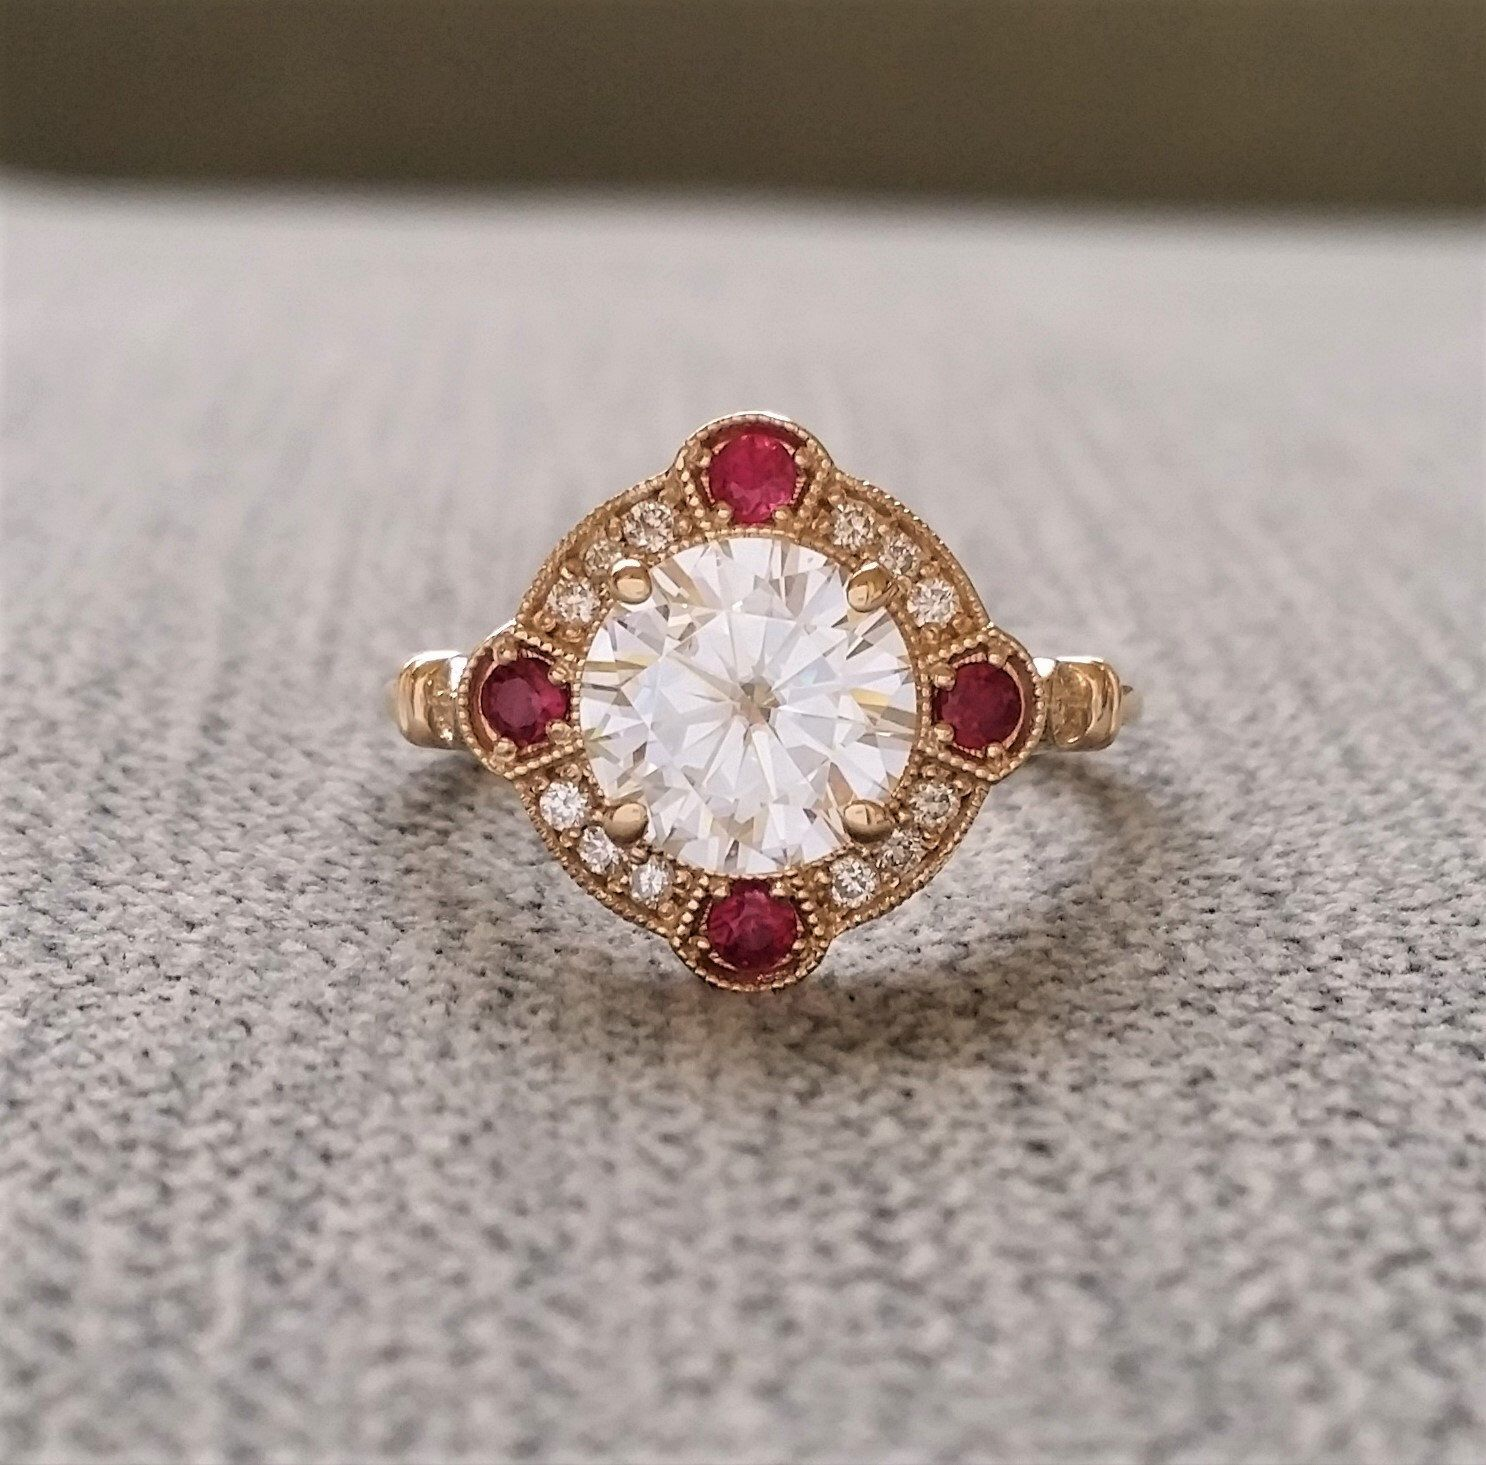 5dae57cb9 Estate Halo E-F Moissanite Ruby Diamond Antique Engagement Ring Victorian  Art Deco Edwardian 14K Yellow Gold